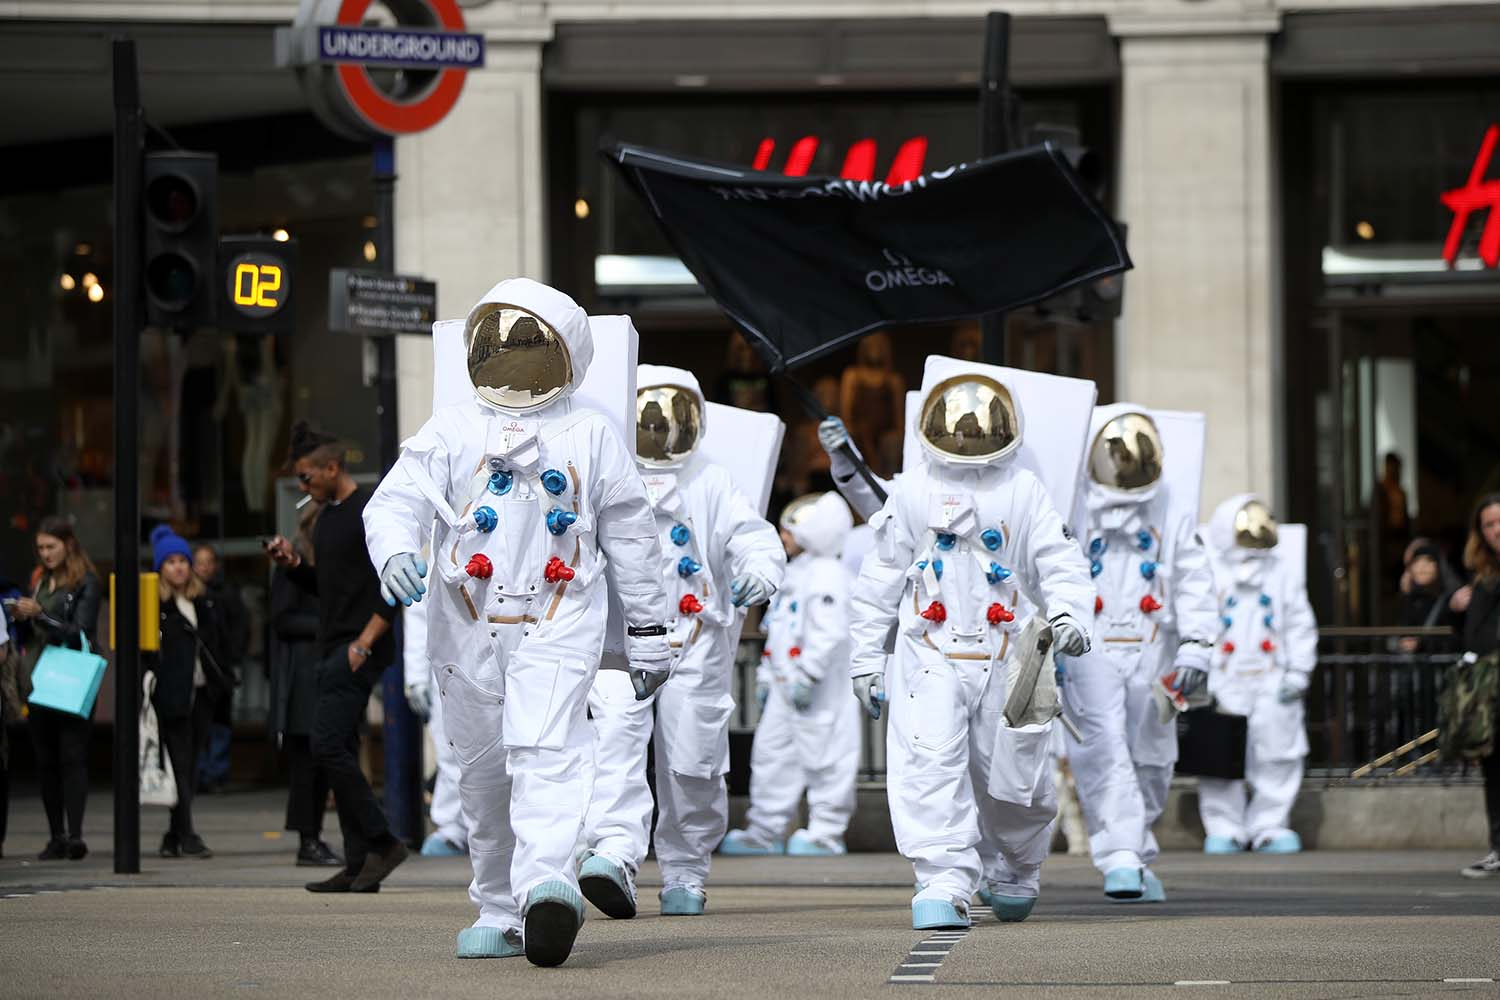 Astronauts on the loose in London